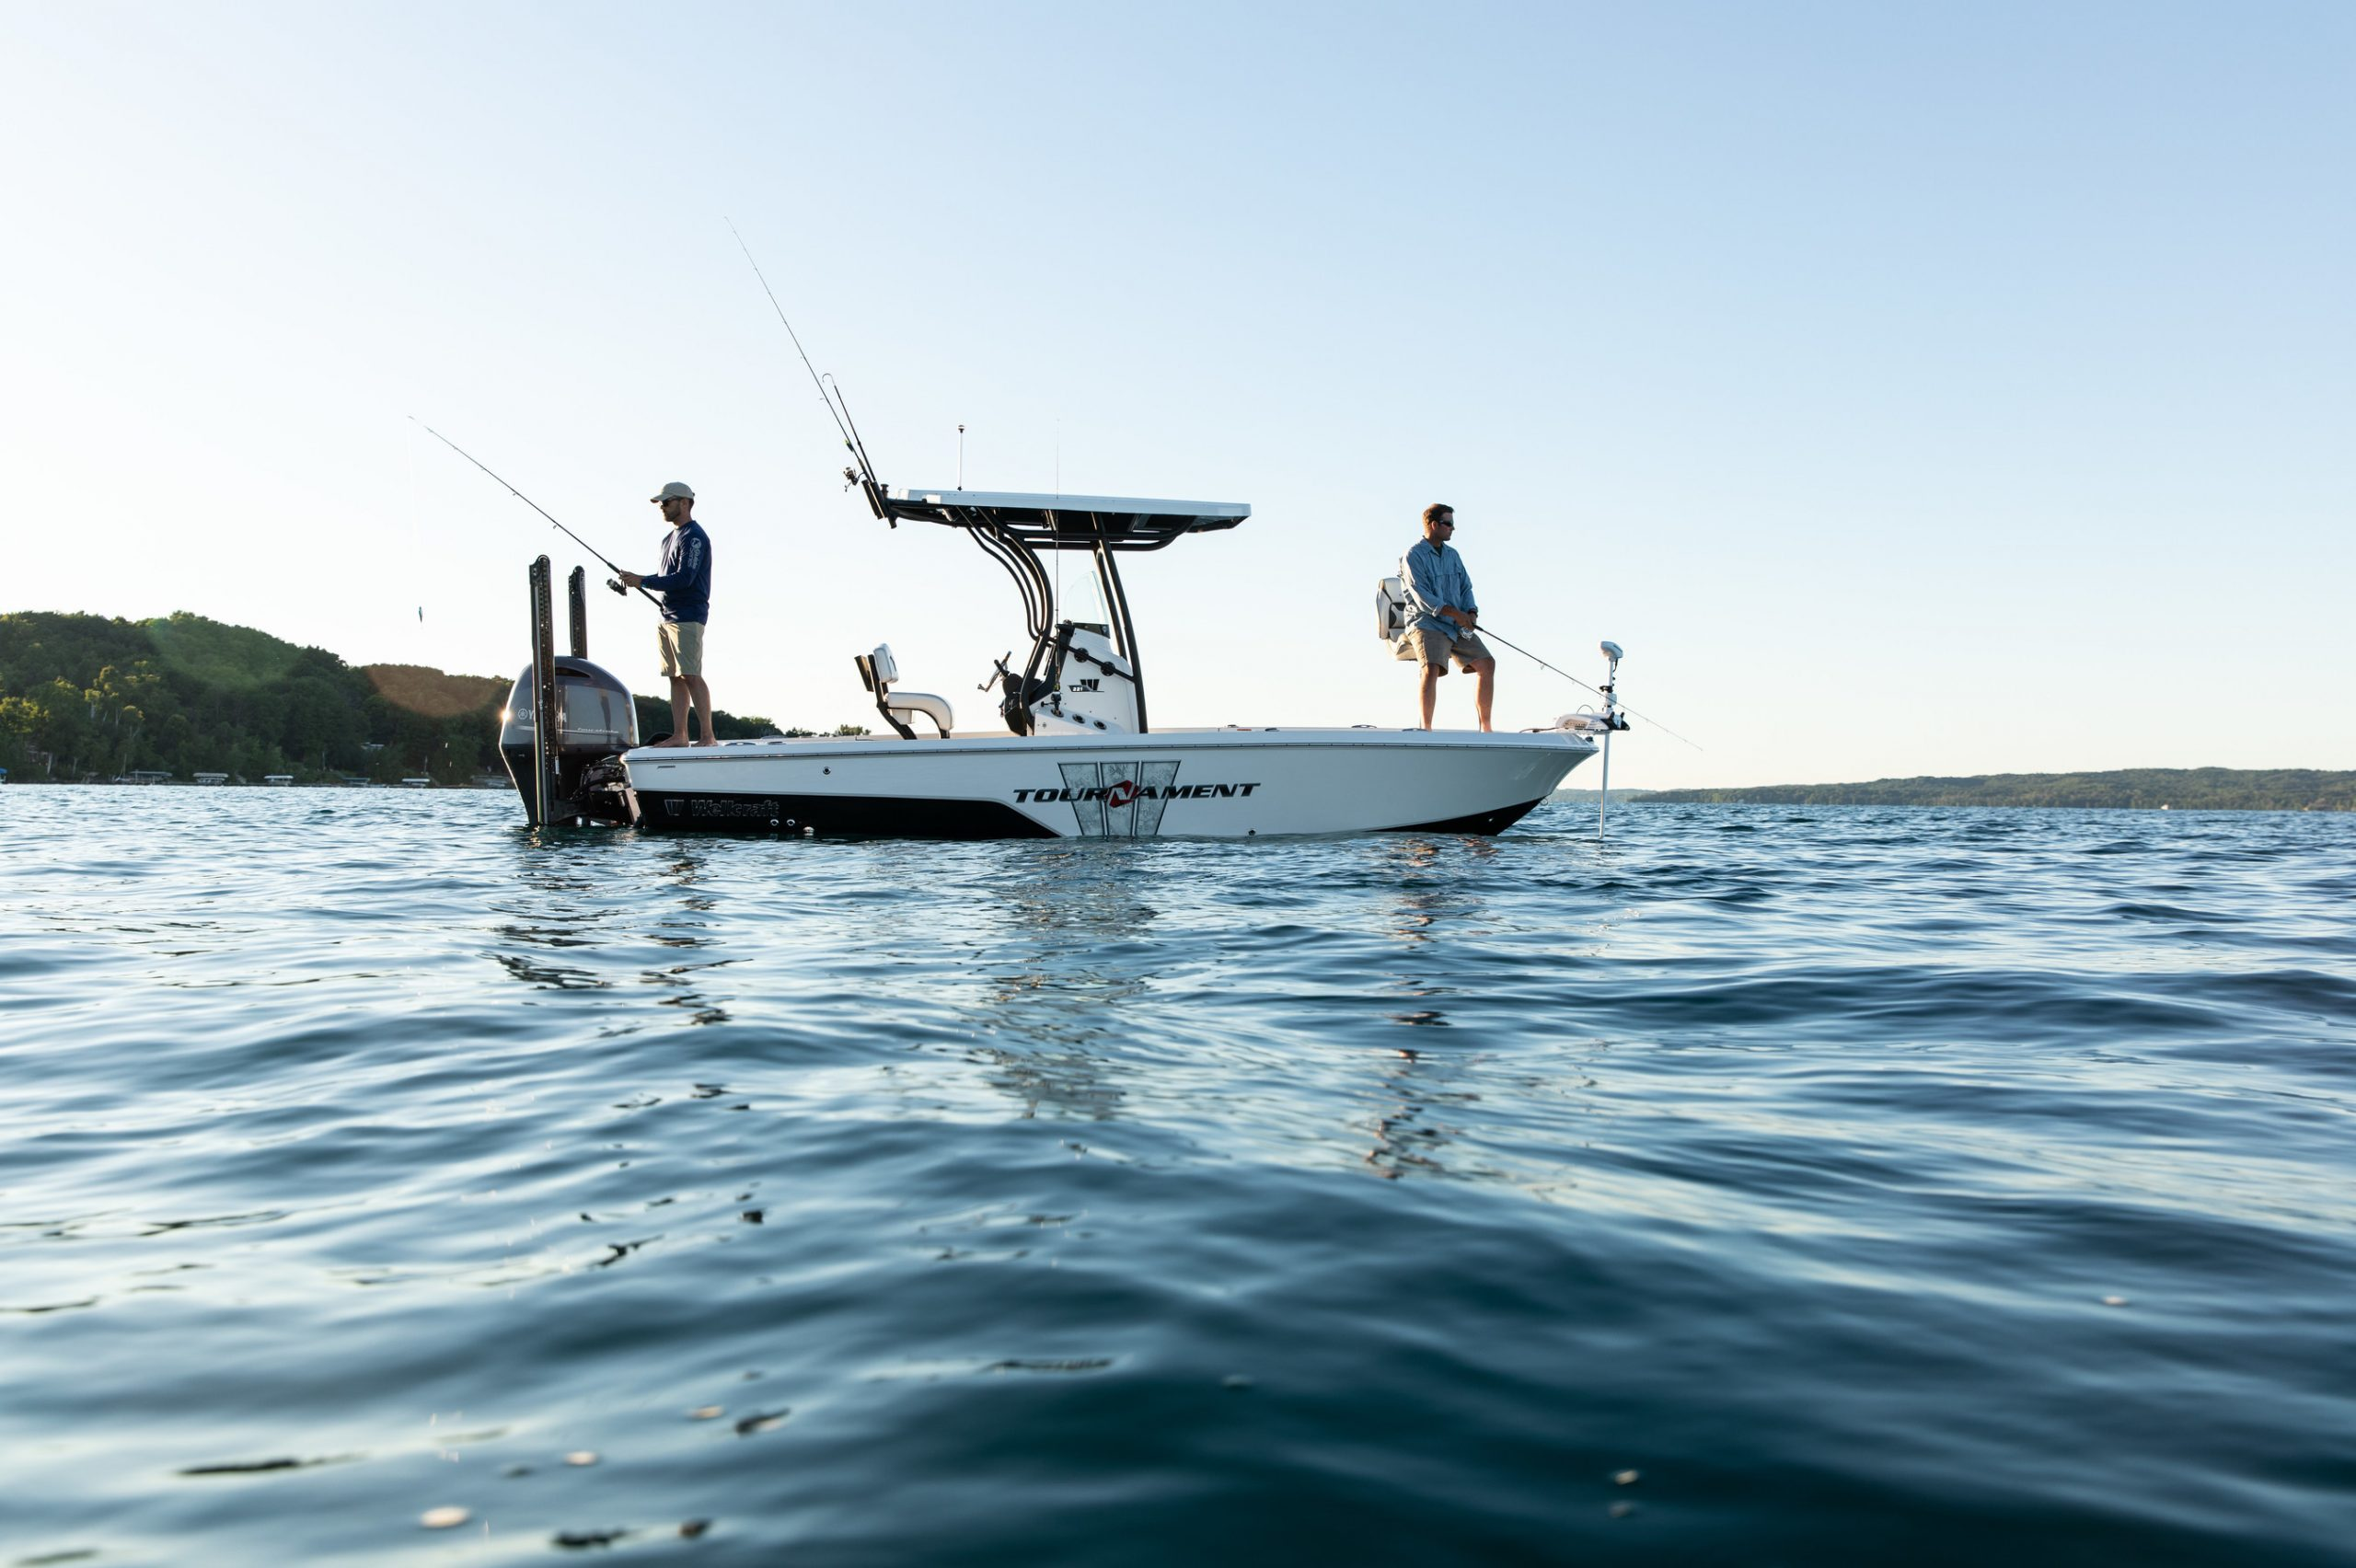 Boatsetter, the leading peer-to-peer boat rental marketplace in the U.S., today announced the official launch of Boatsetter Fishing, a team and product built specifically to help fishing charters, guides, and outfitters.